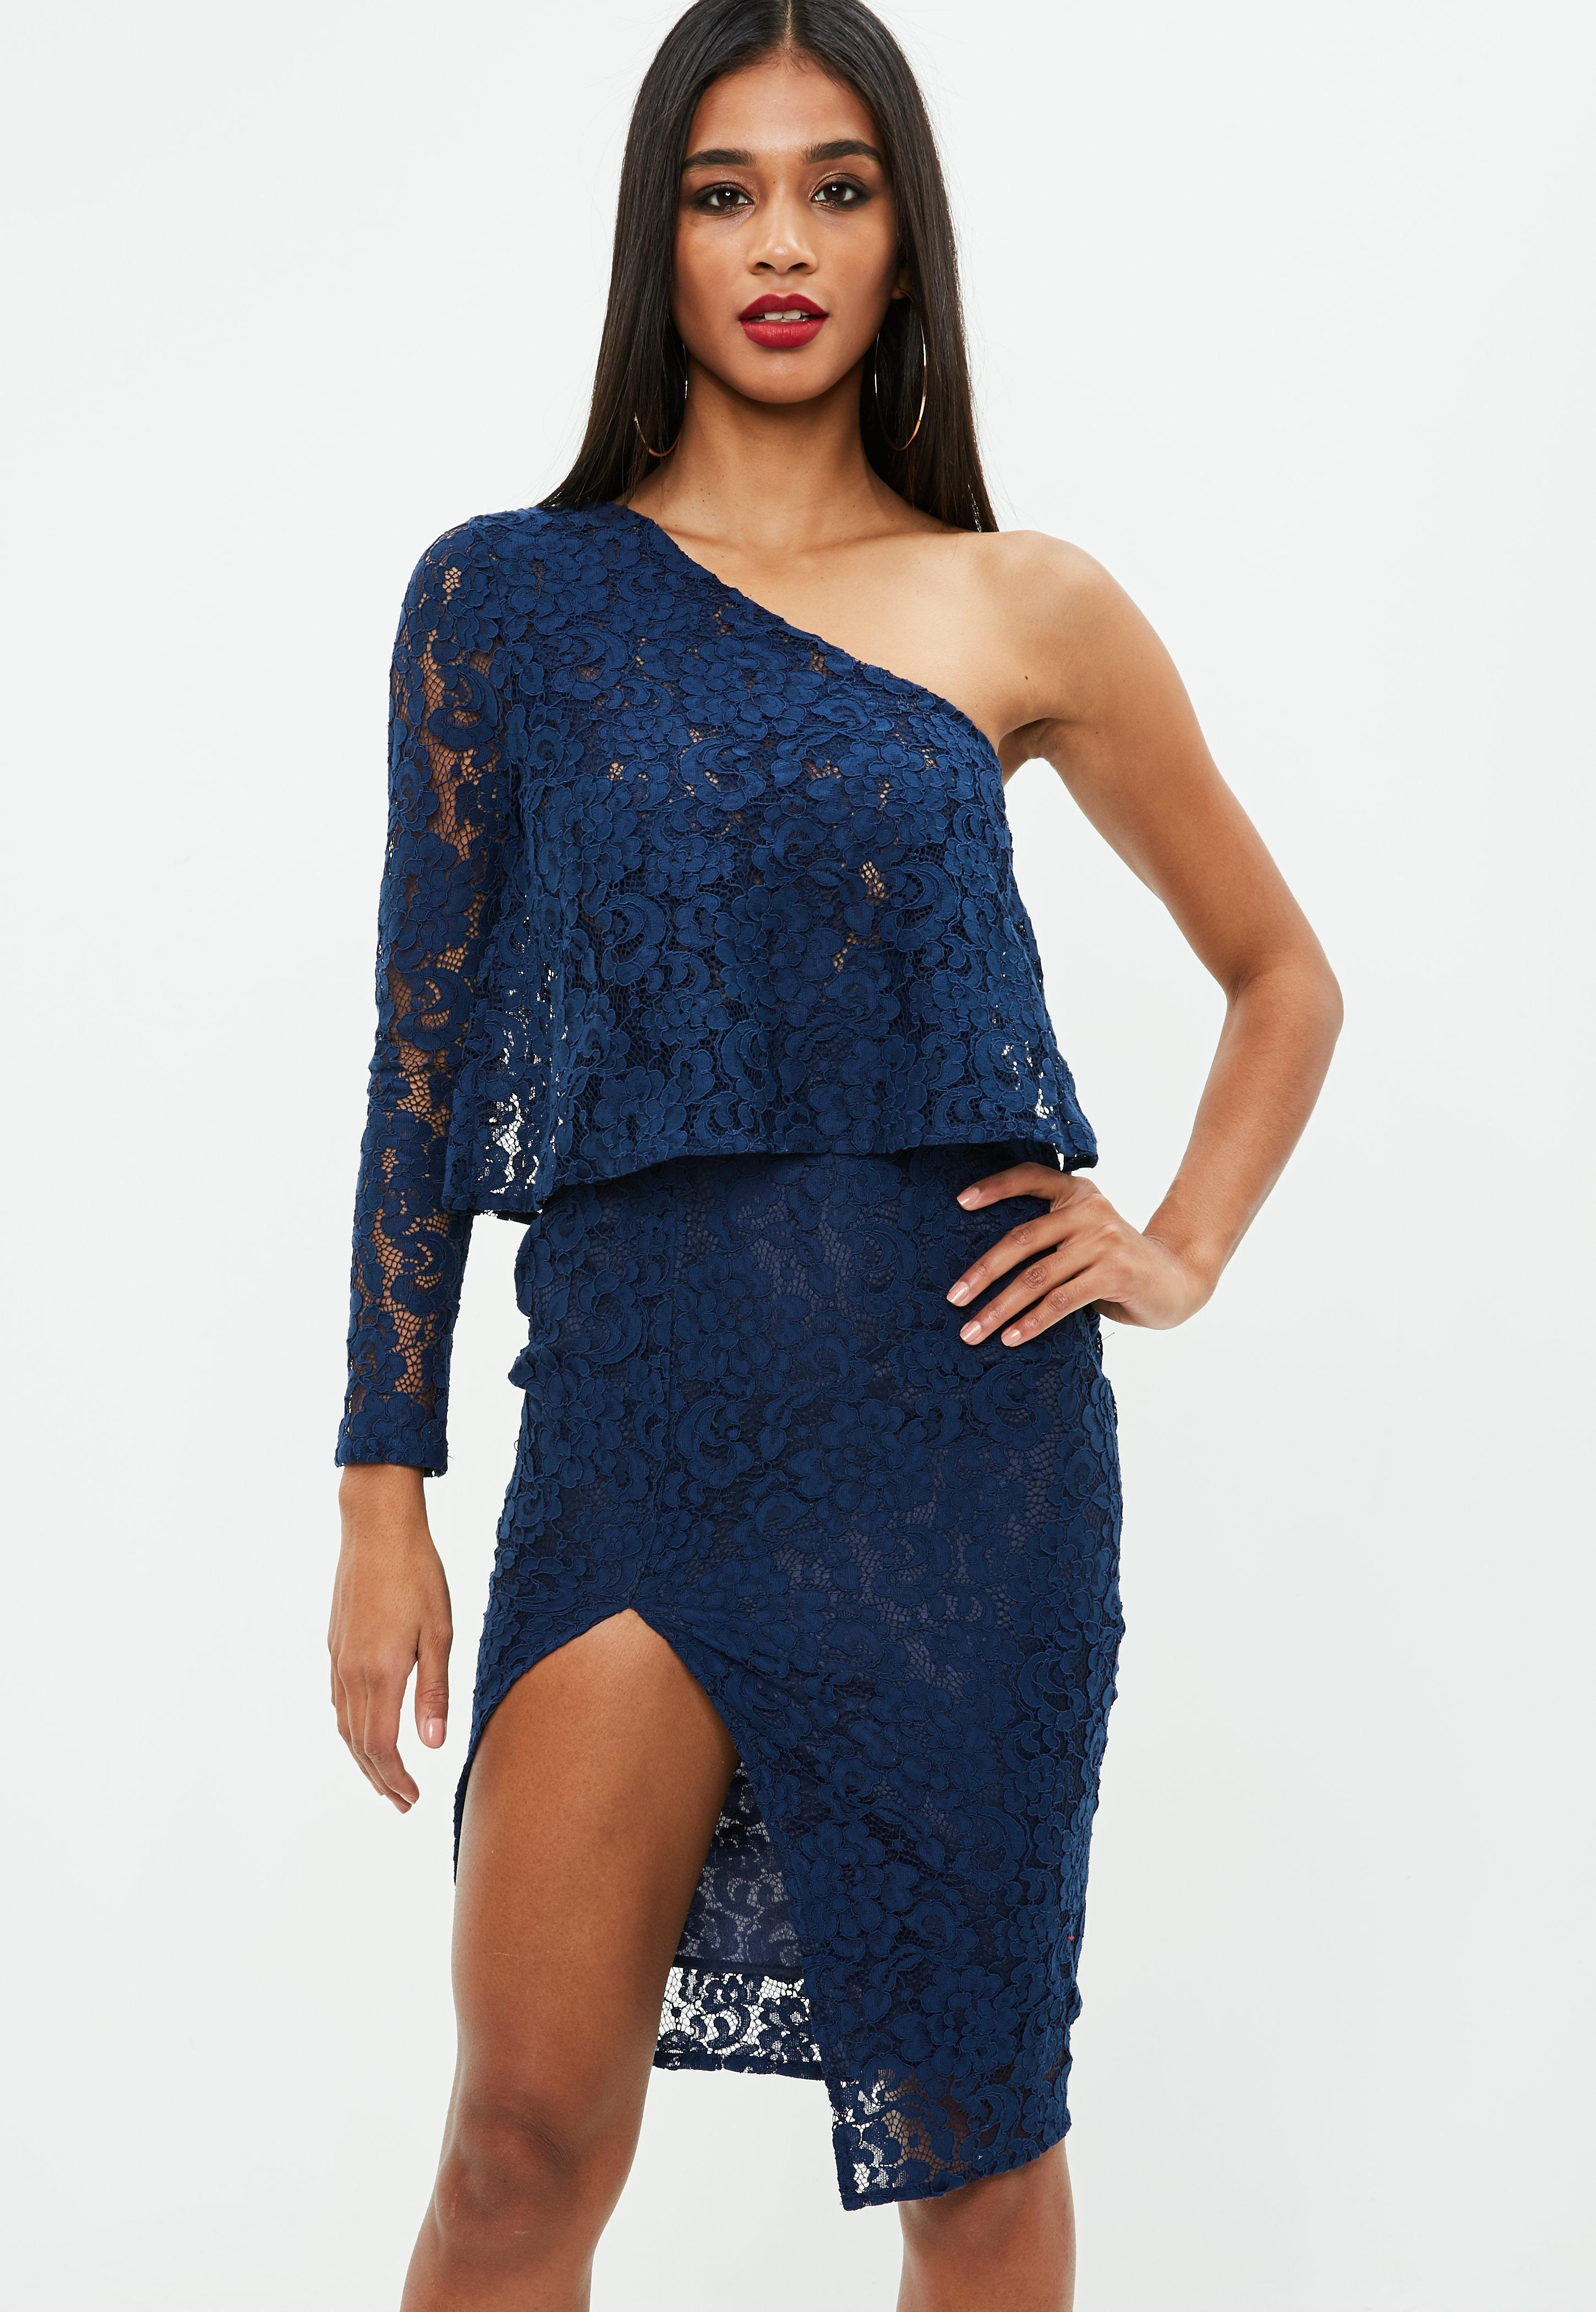 Wedding Guest Dresses & Dresses for Weddings | Missguided